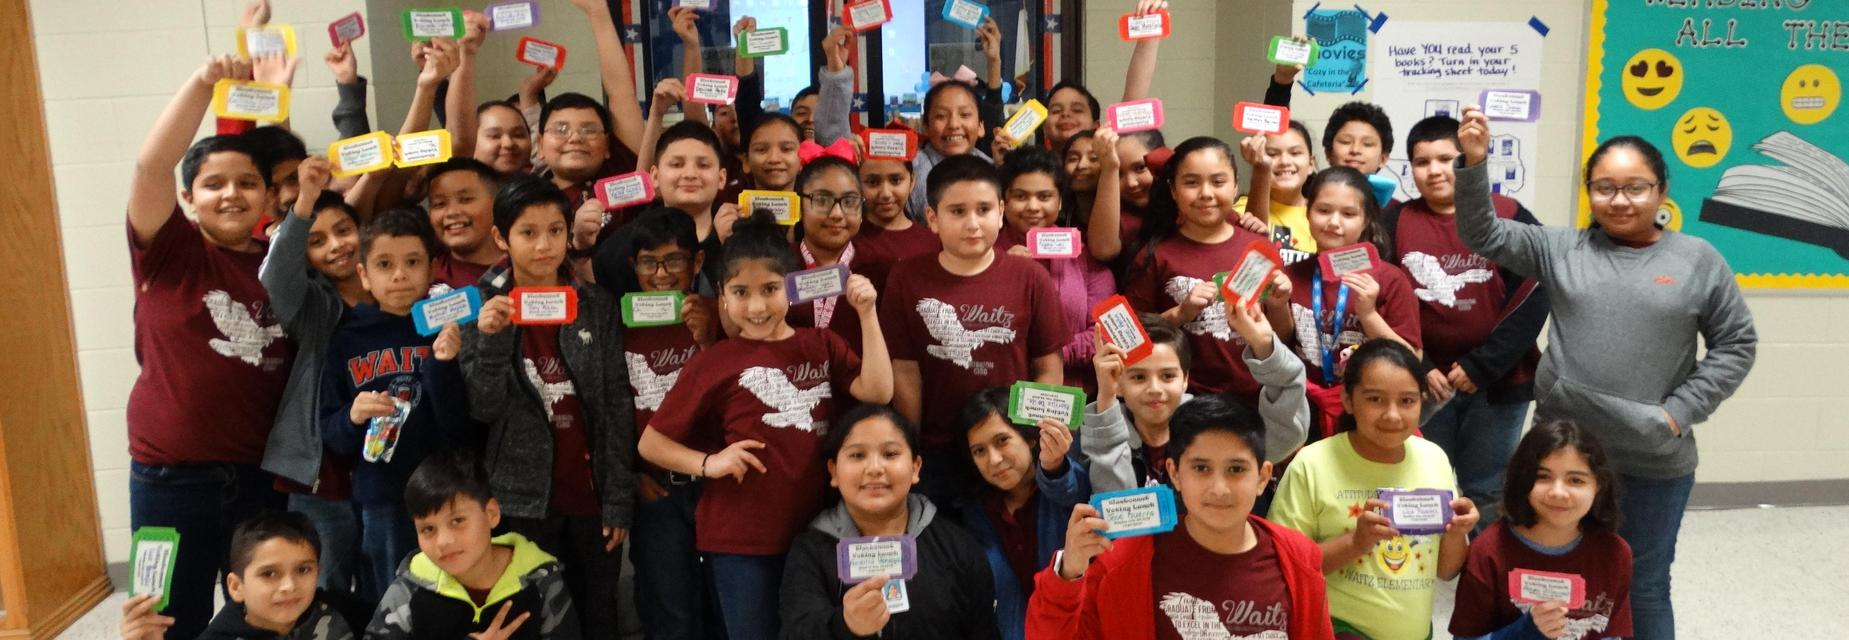 5th grade students with Bluebonnet Voting Luncheon tickets